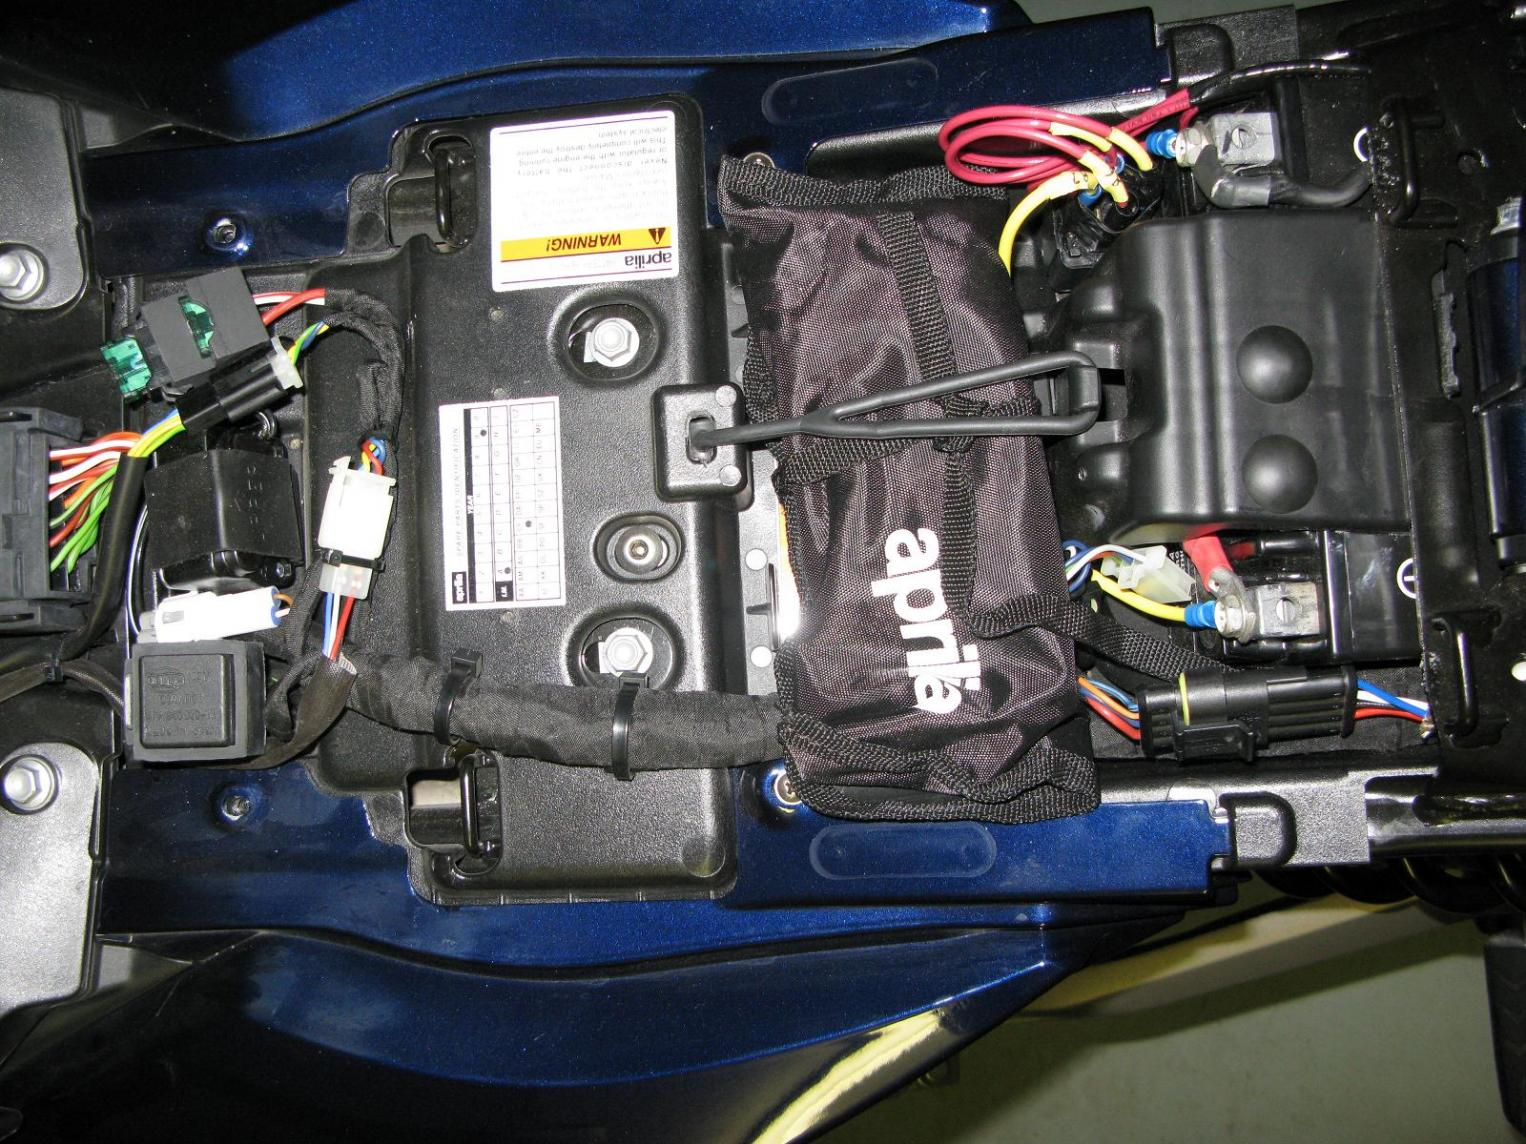 [DIAGRAM_3US]  Relay/Fuses location picture needed | Aprilia Fuse Box |  | Aprilia Forum